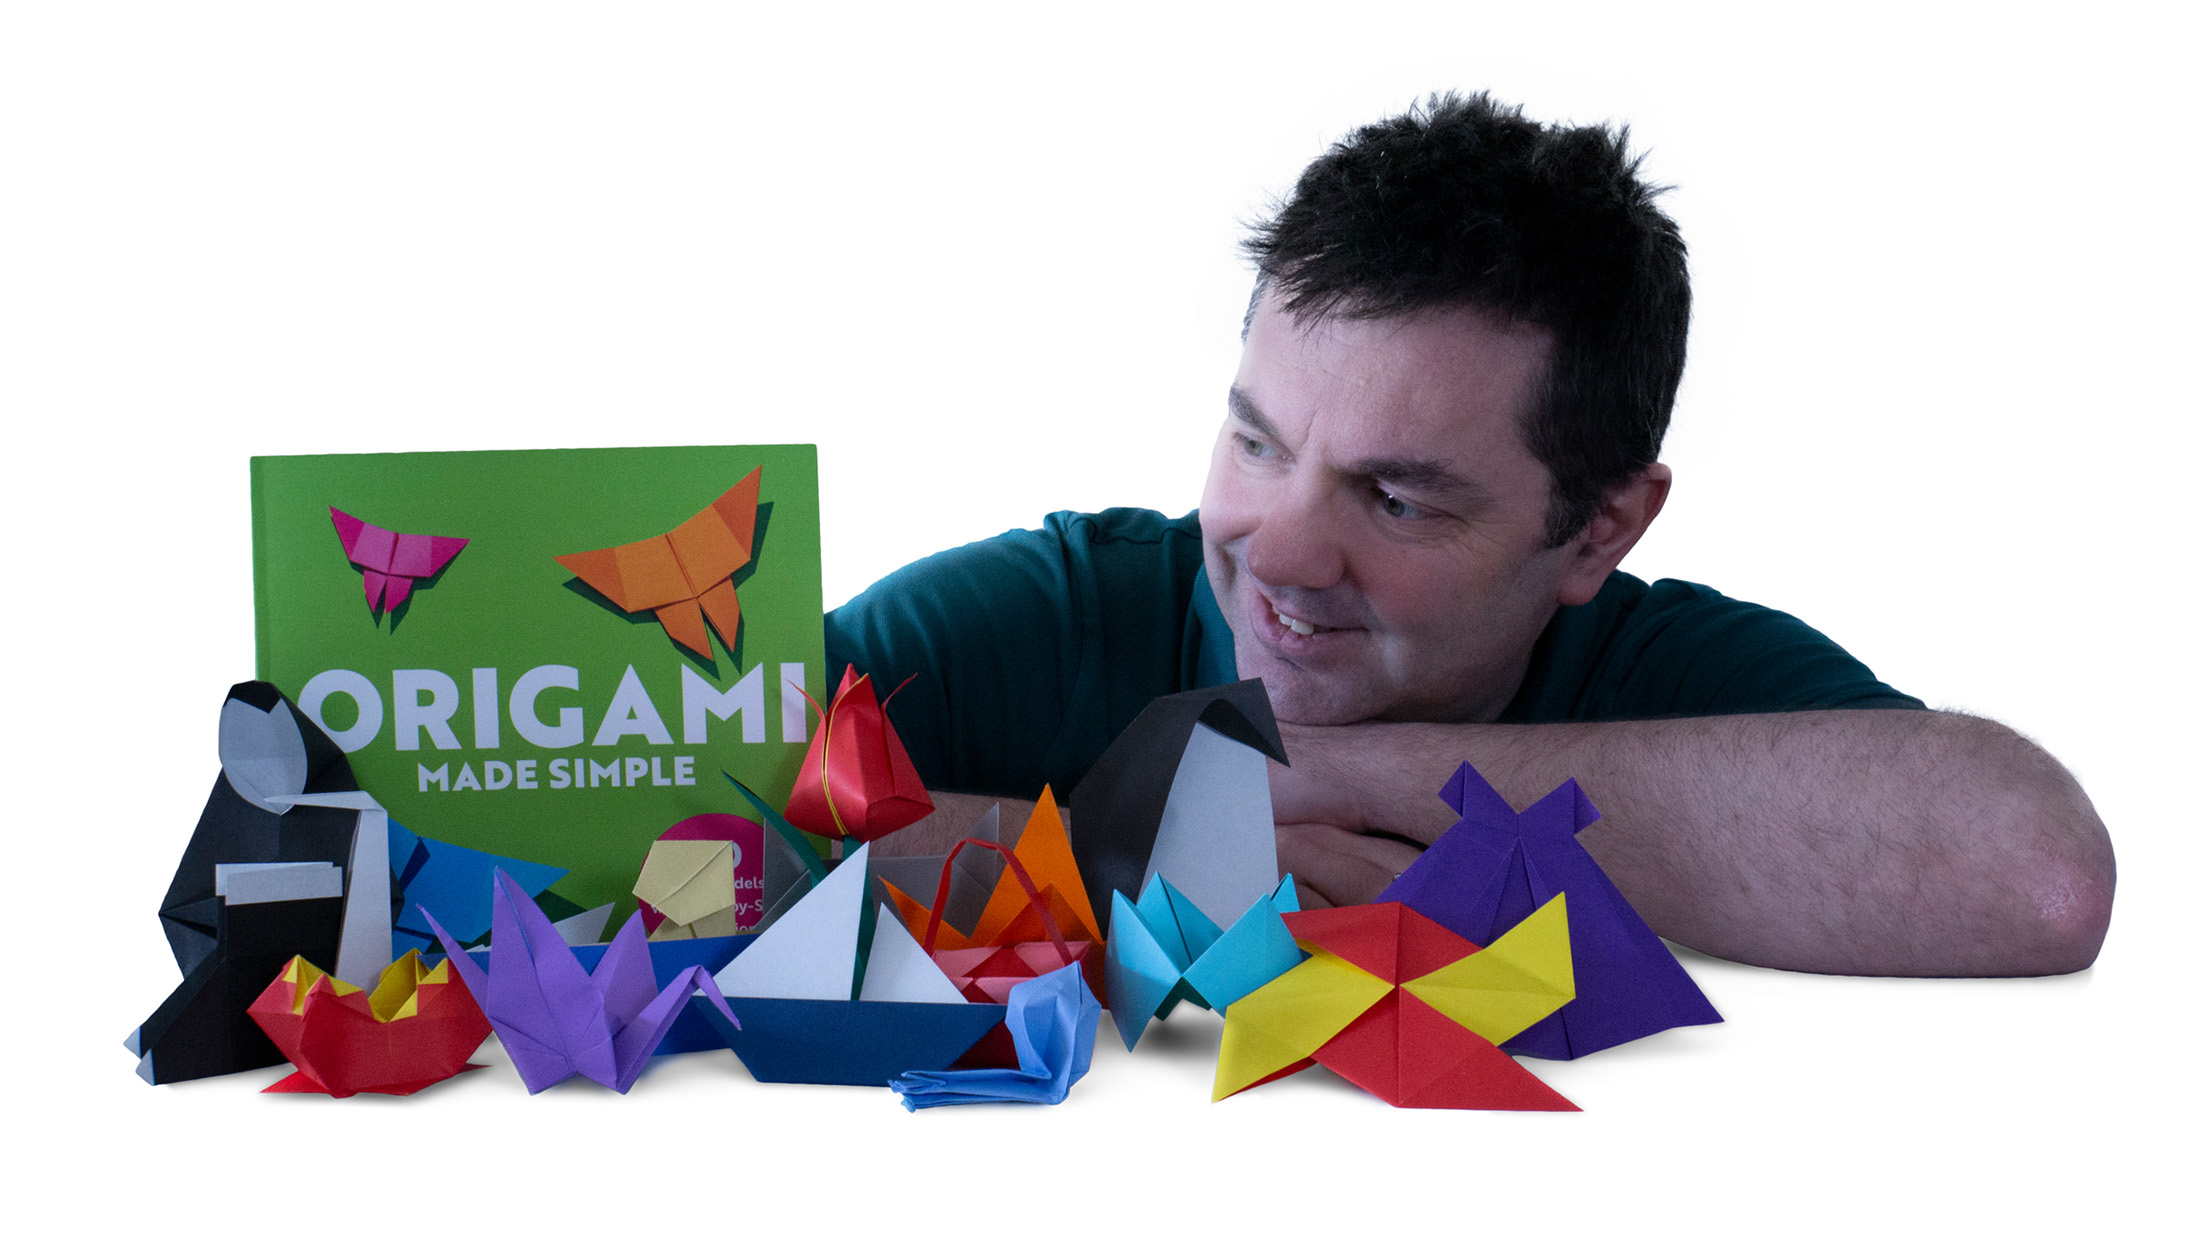 Russell Wood with Origami Made Simple Book and Origami models